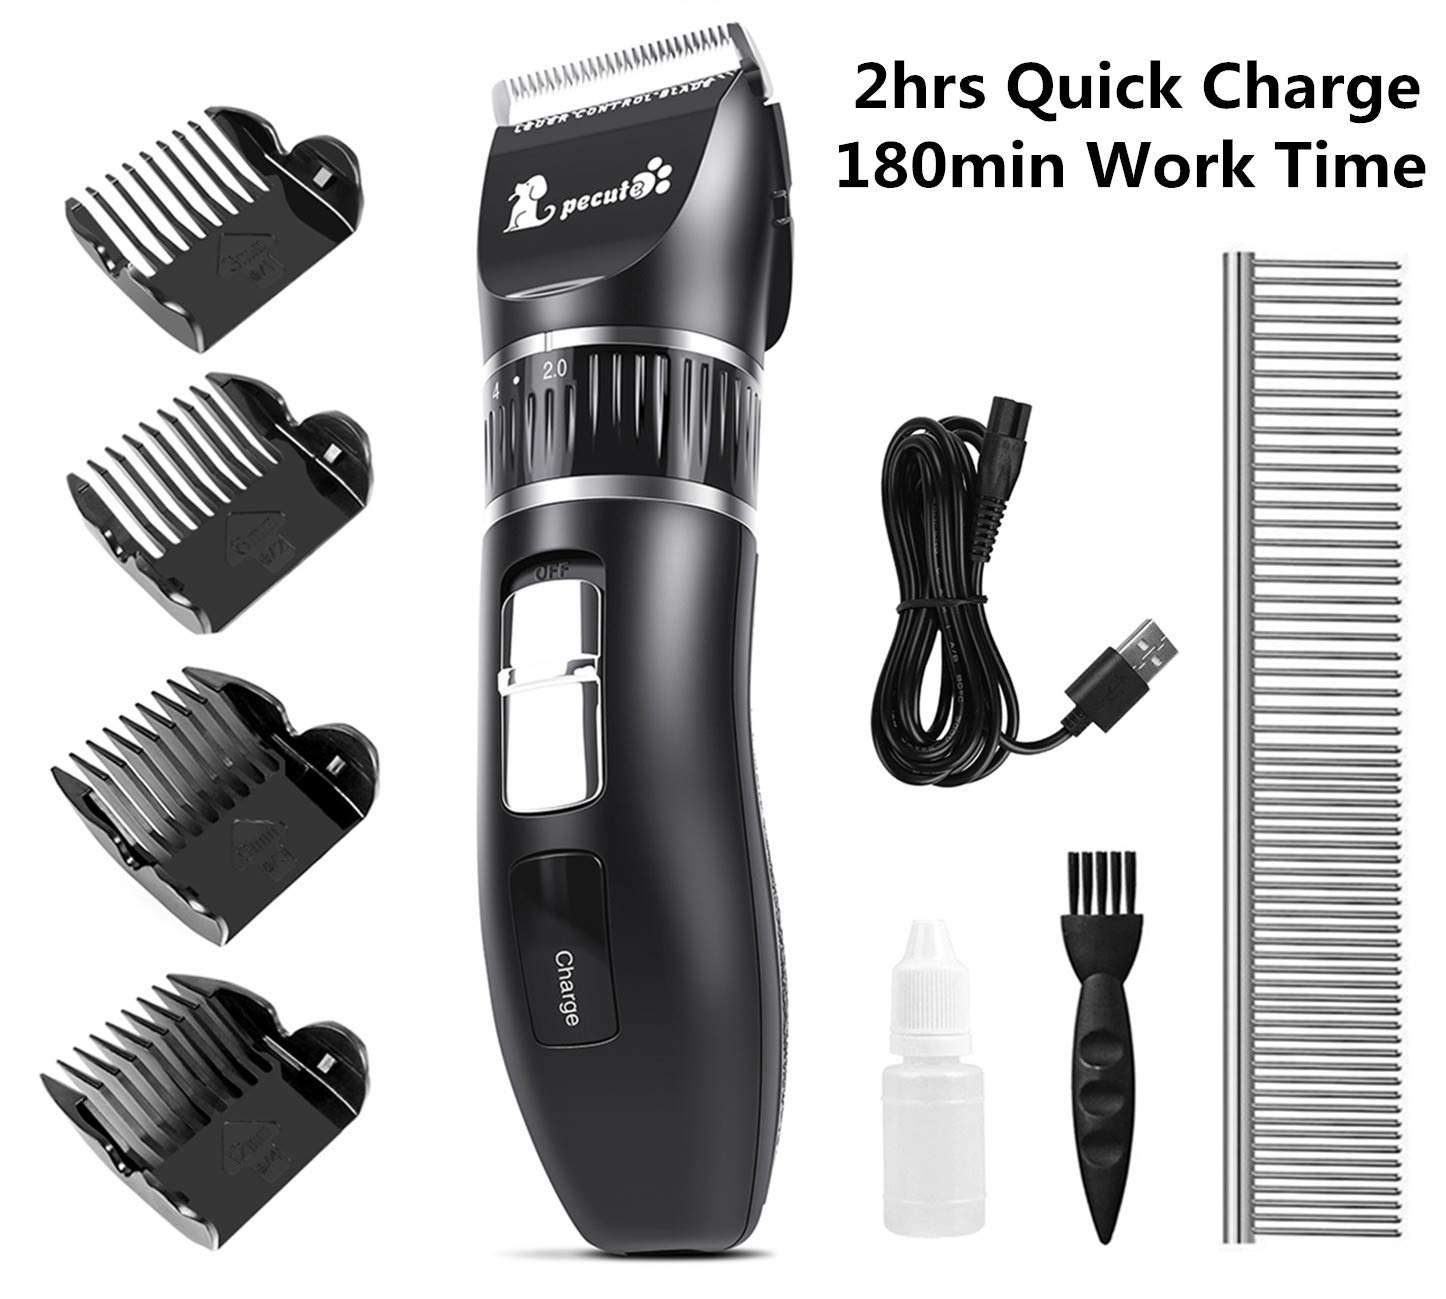 Pecute Dog Clippers, 2hrs Quick Charge, 180min Work Time, Stainless Steel Ceramic Blade, Detachable Battery Professional Pet Clipper for Dogs Cats Pets Grooming Price: $29.99